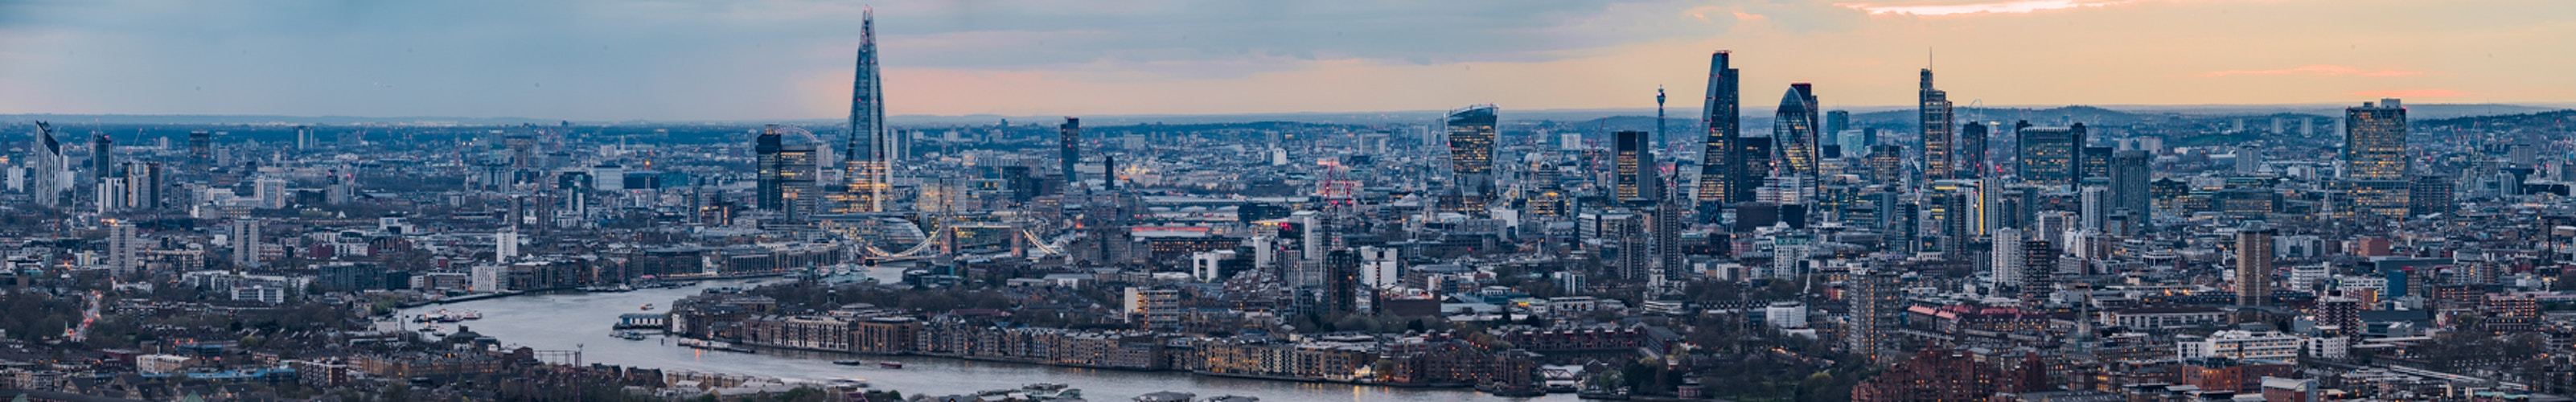 Panorama from Canary Wharf - London Viewpoints